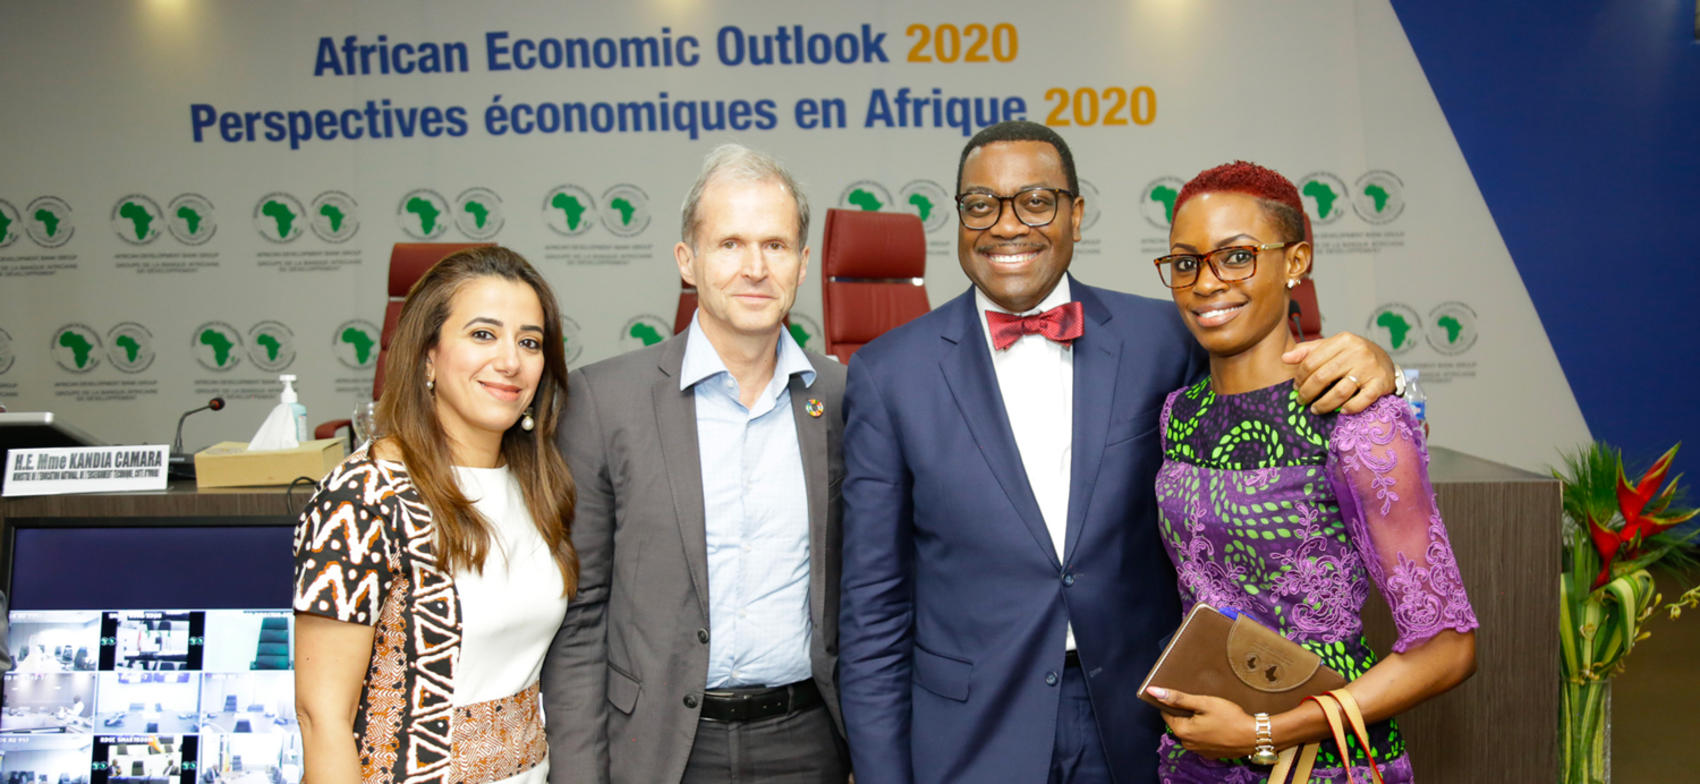 African Economic Outlook 2020 to be presented at 33rd African Union Summit on Feb 7